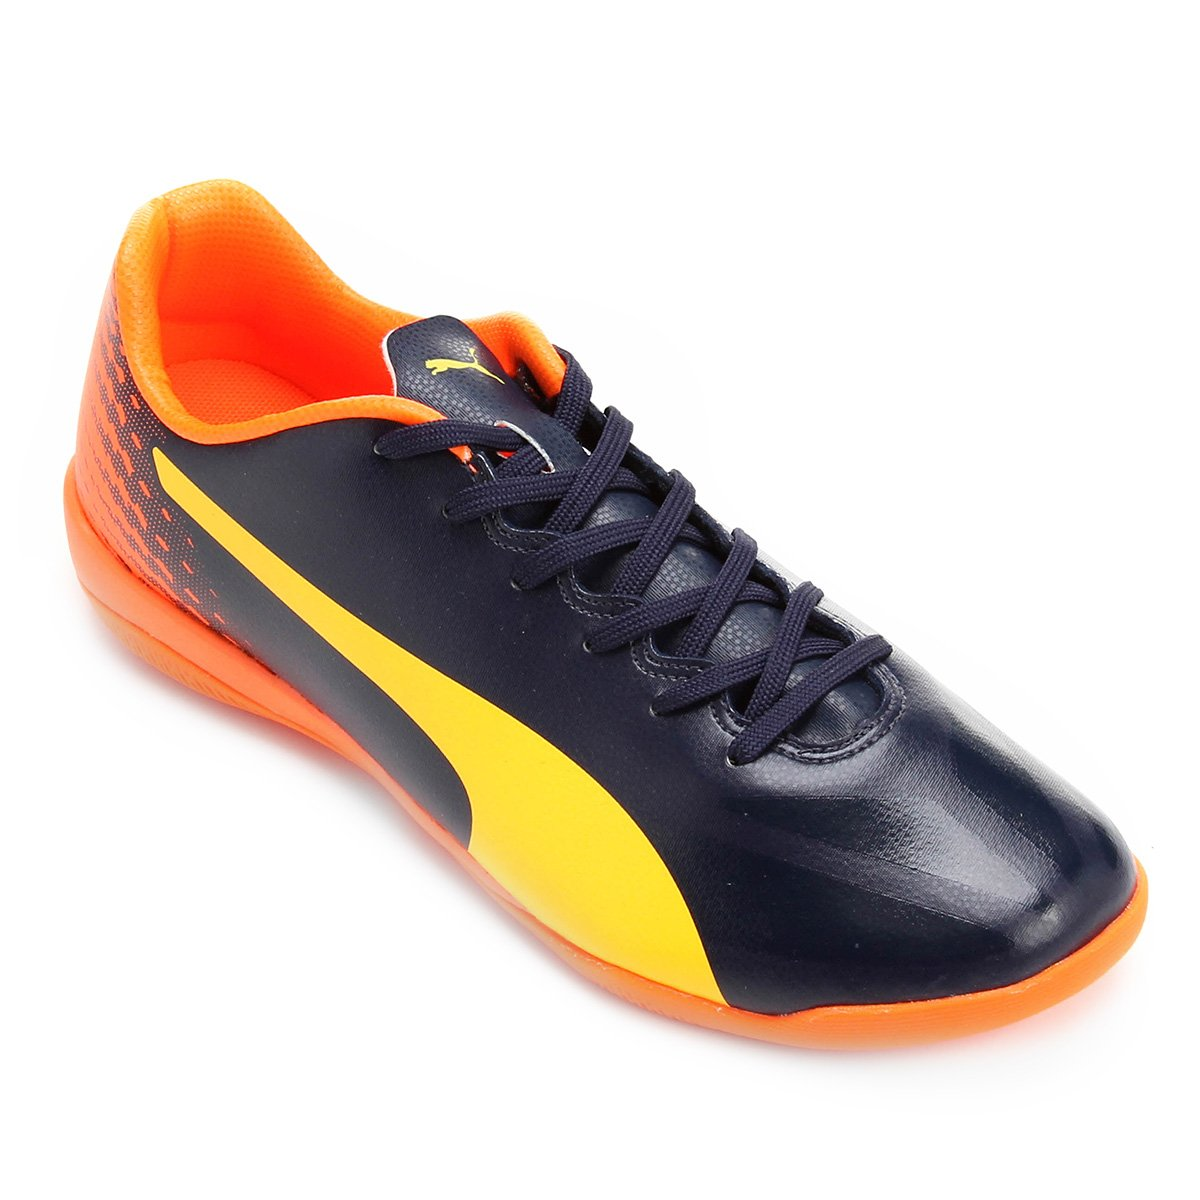 d6db8d5ae3e Chuteira Futsal Puma Evospeed 17.4 Tricks IT